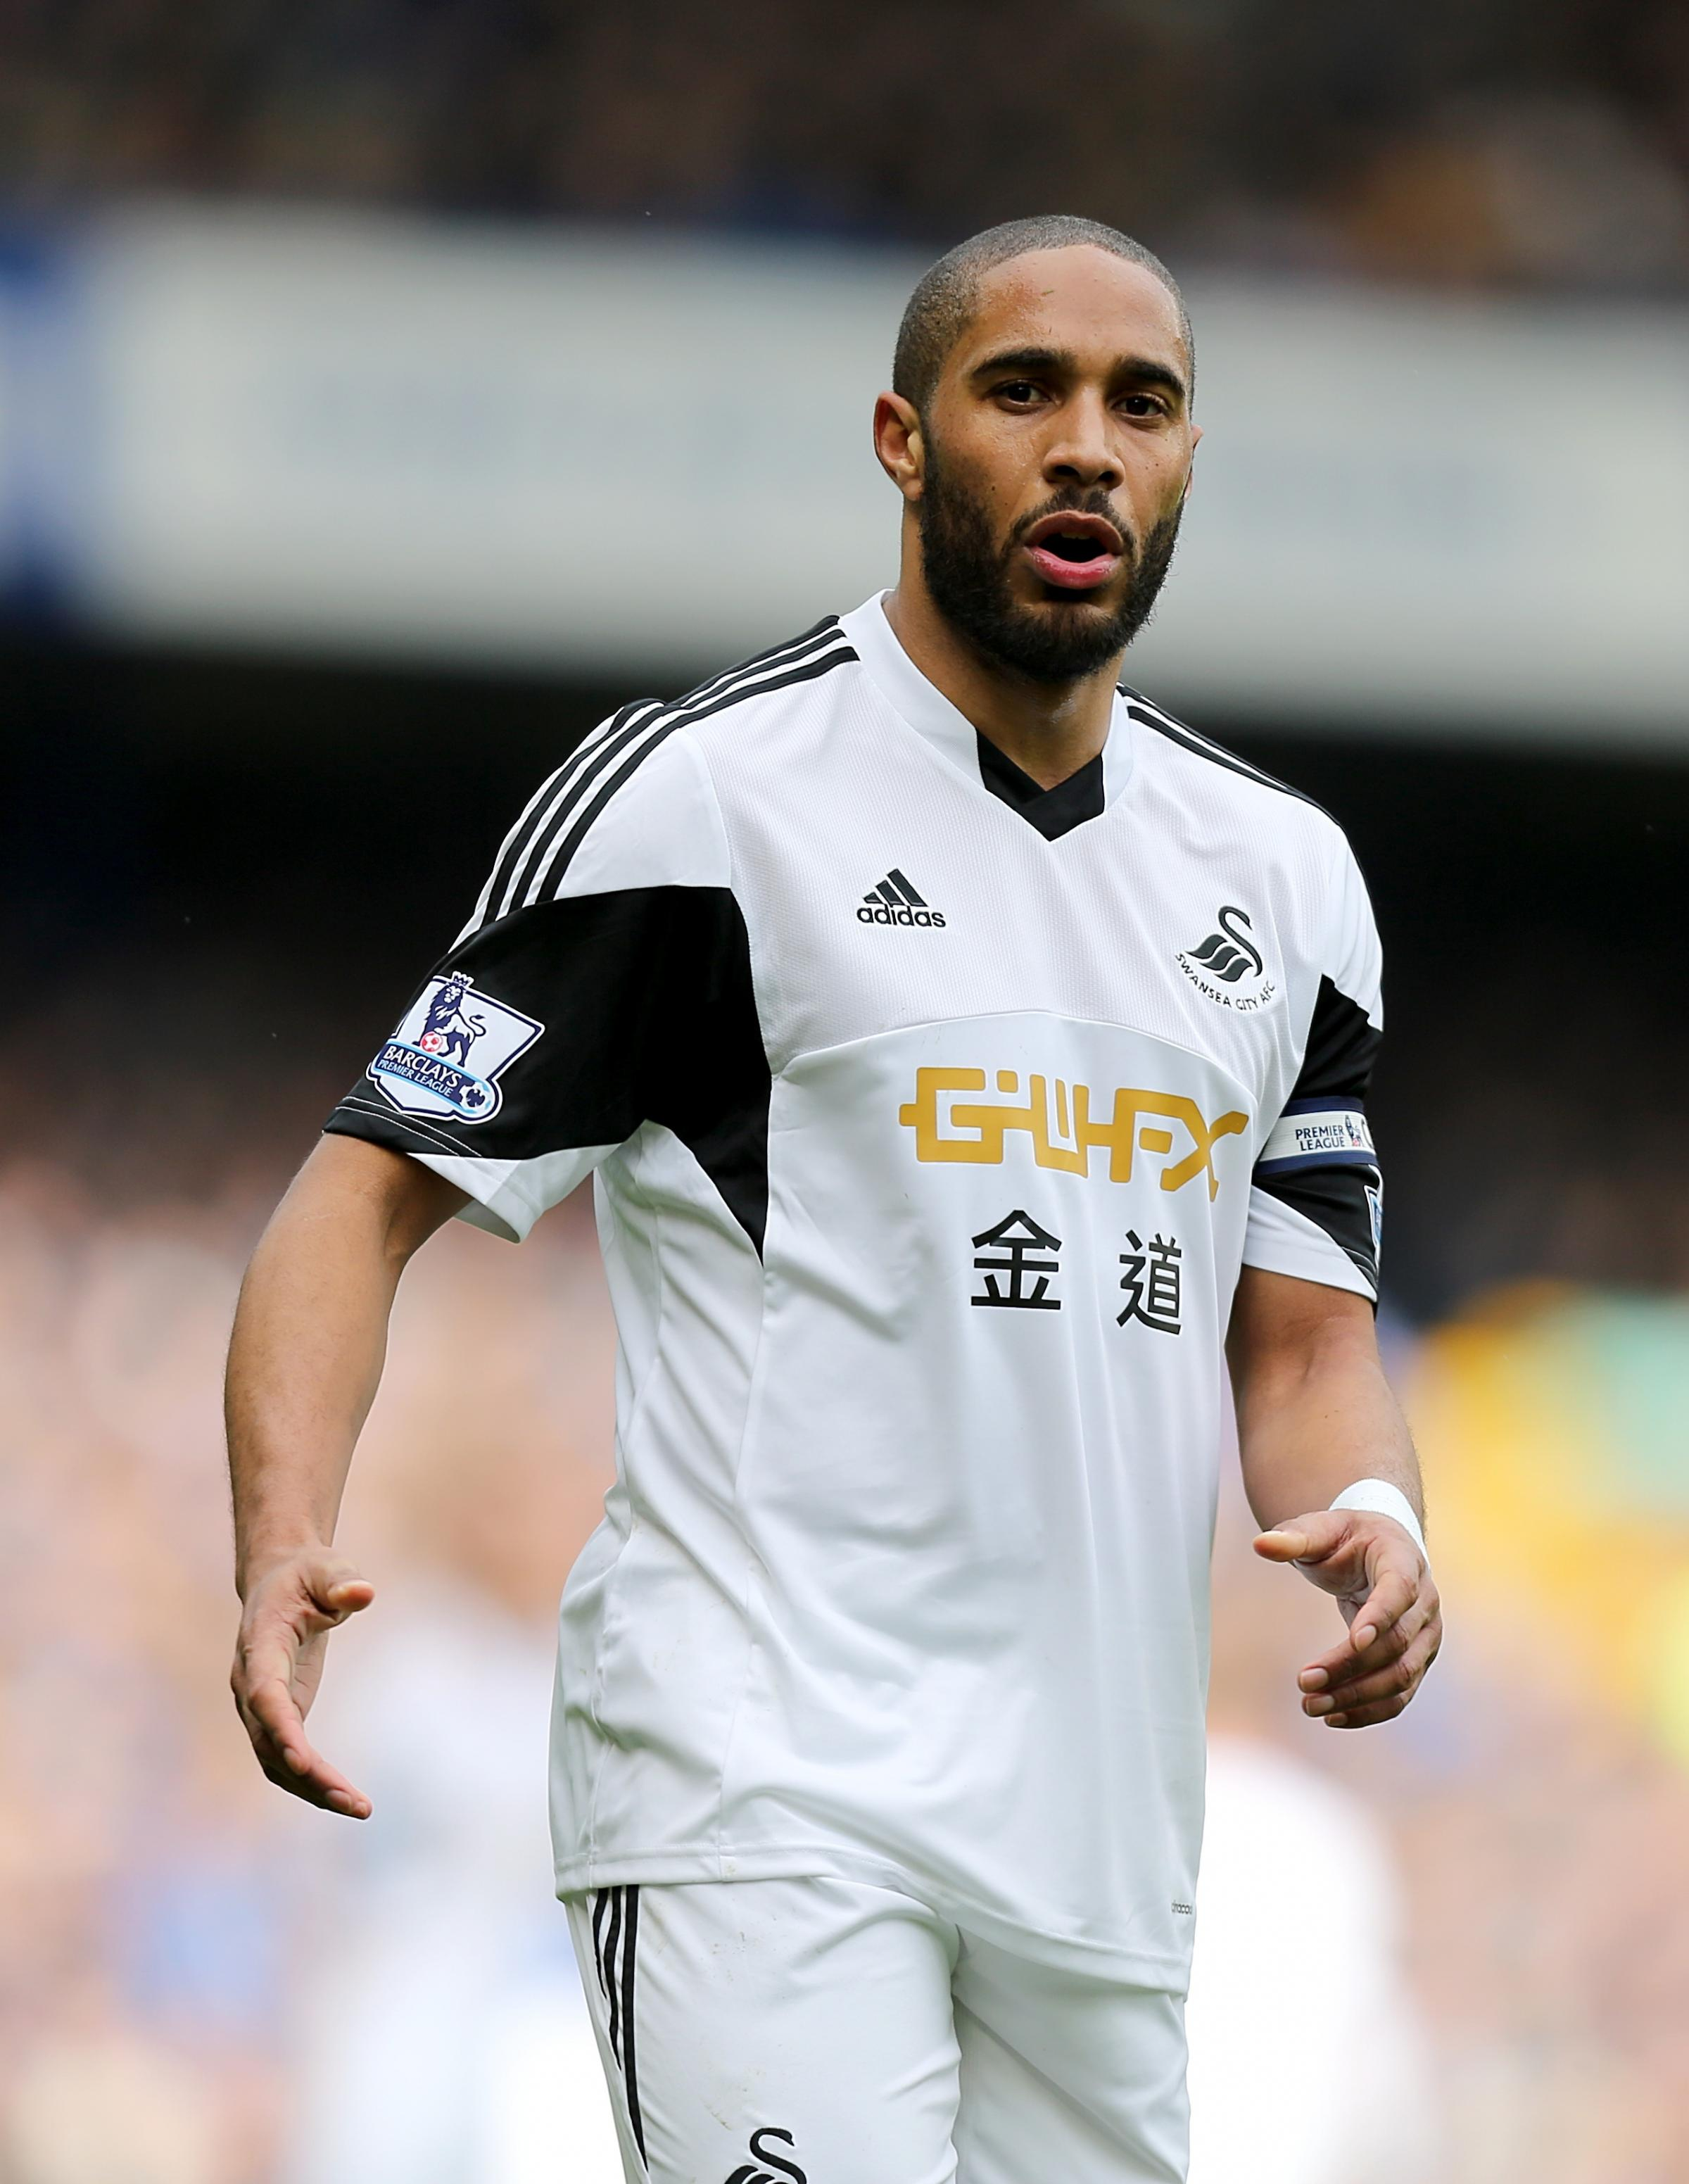 STAYING PUT: Ashley Williams has signed a new four-year deal with Swansea City, ending Sunderland's attempts to take him to the Stadium of Light